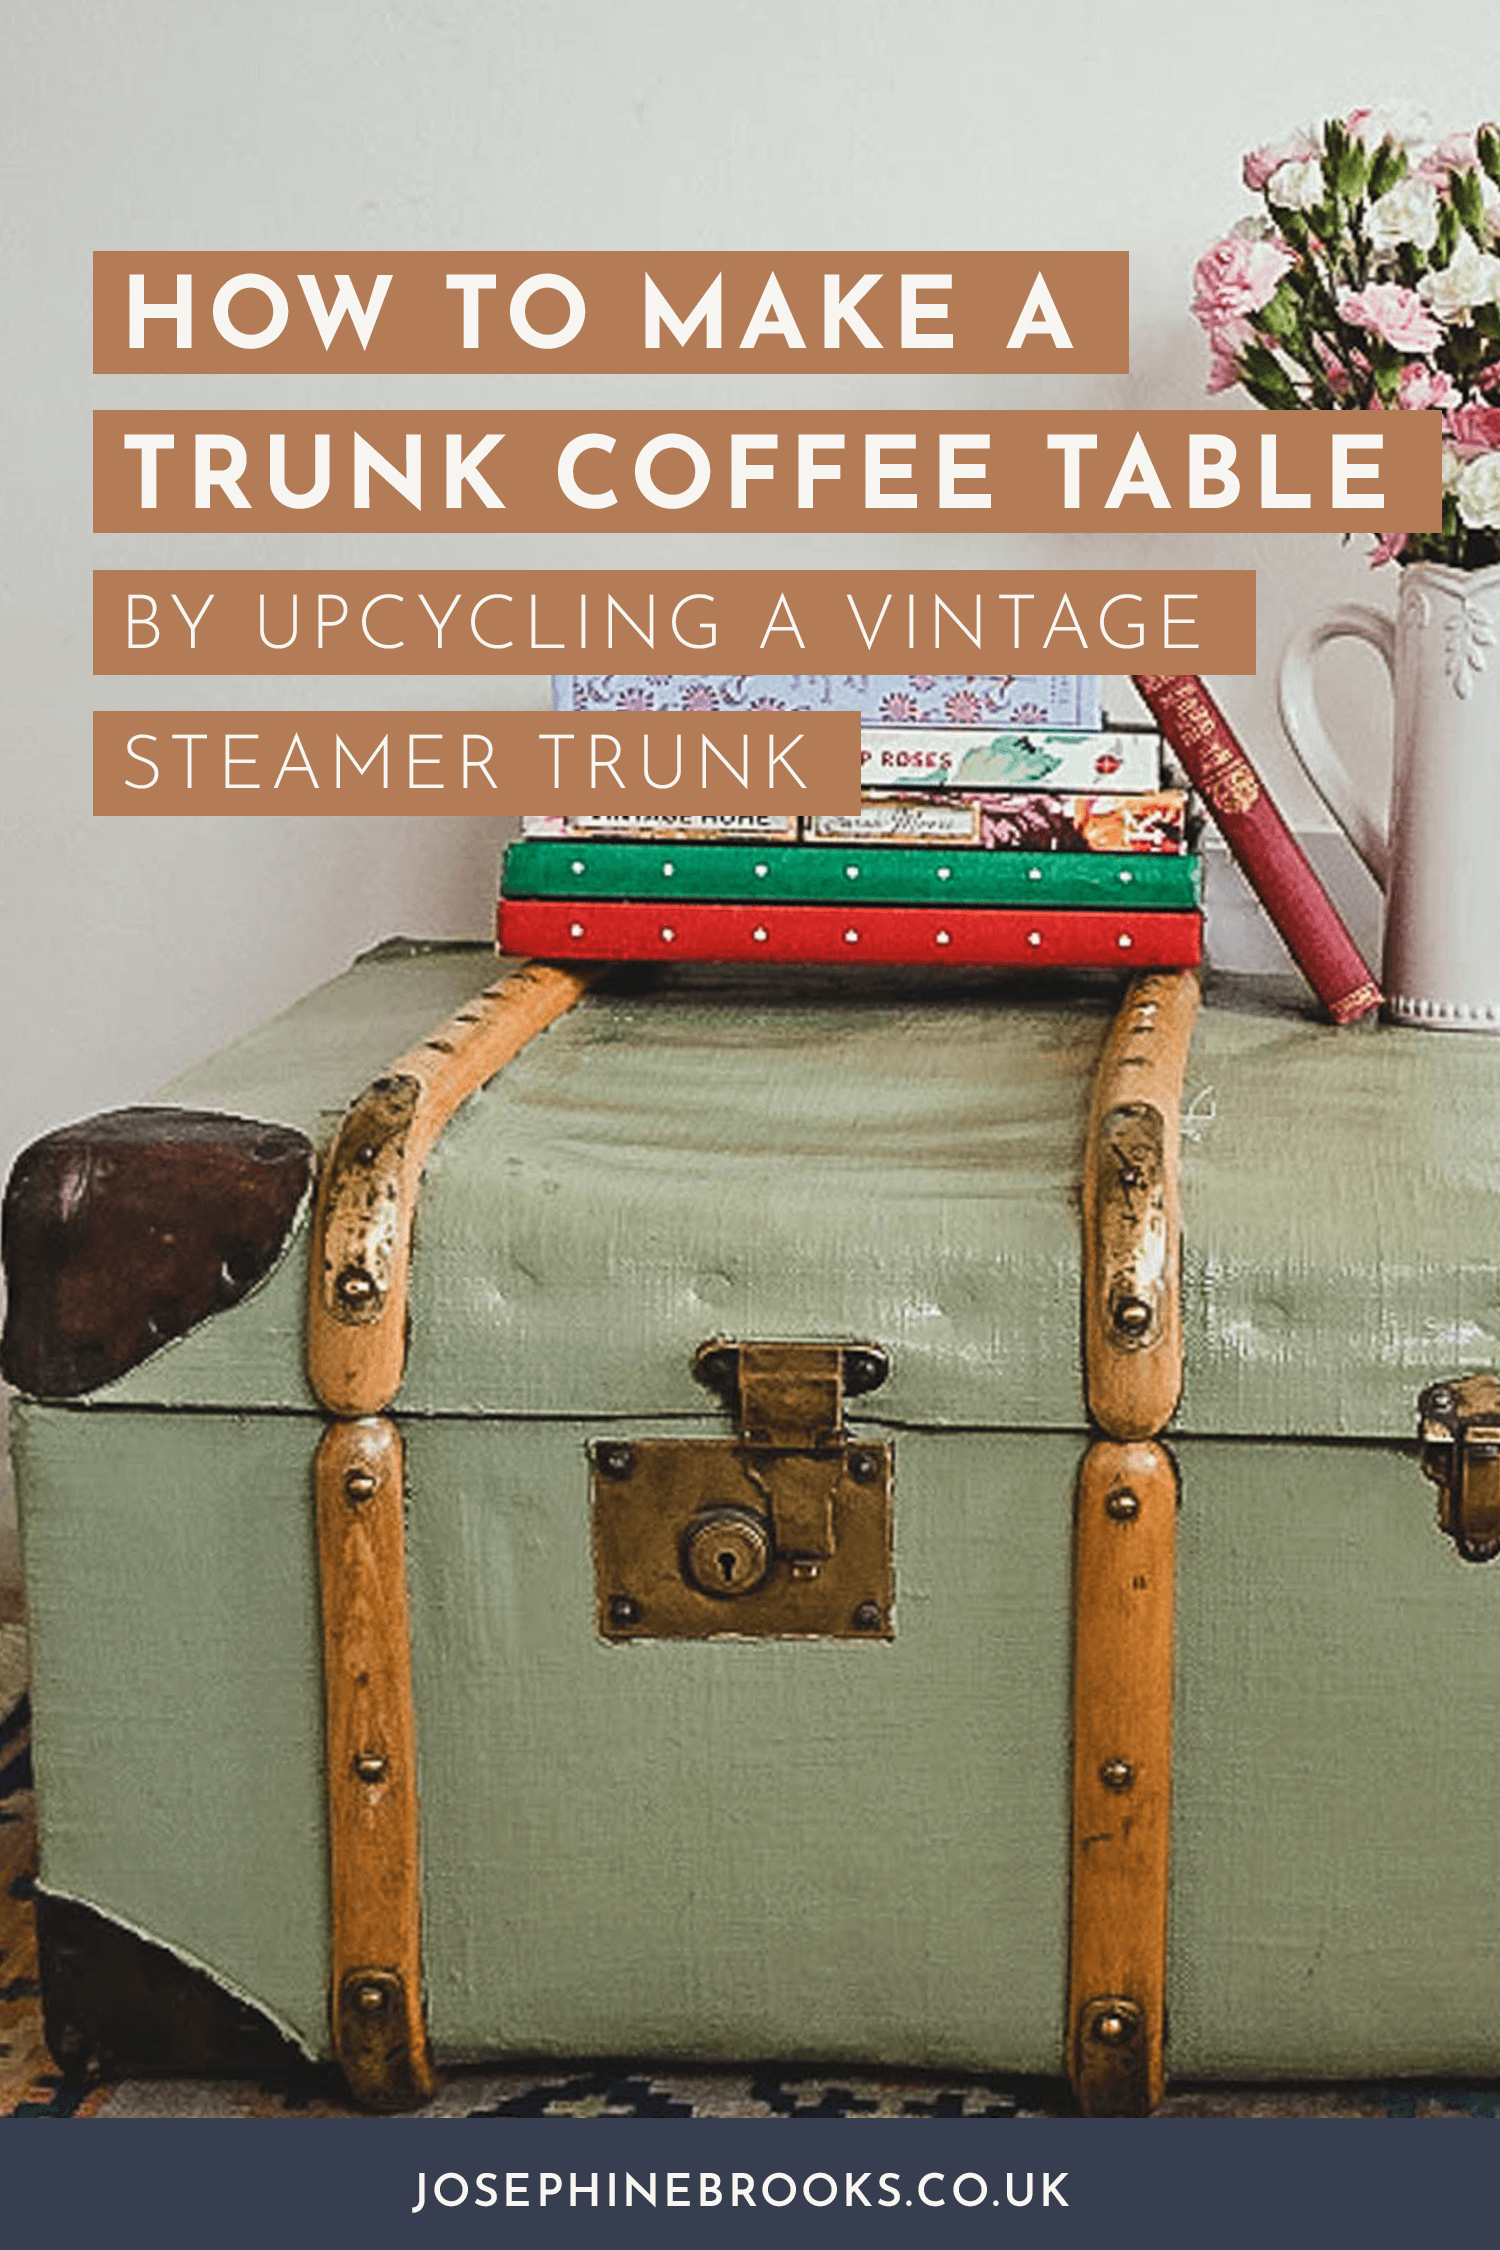 How to make a Trunk Coffee Table Using an Upcycled Vintage Steamer Trunk - Trunk table DIY